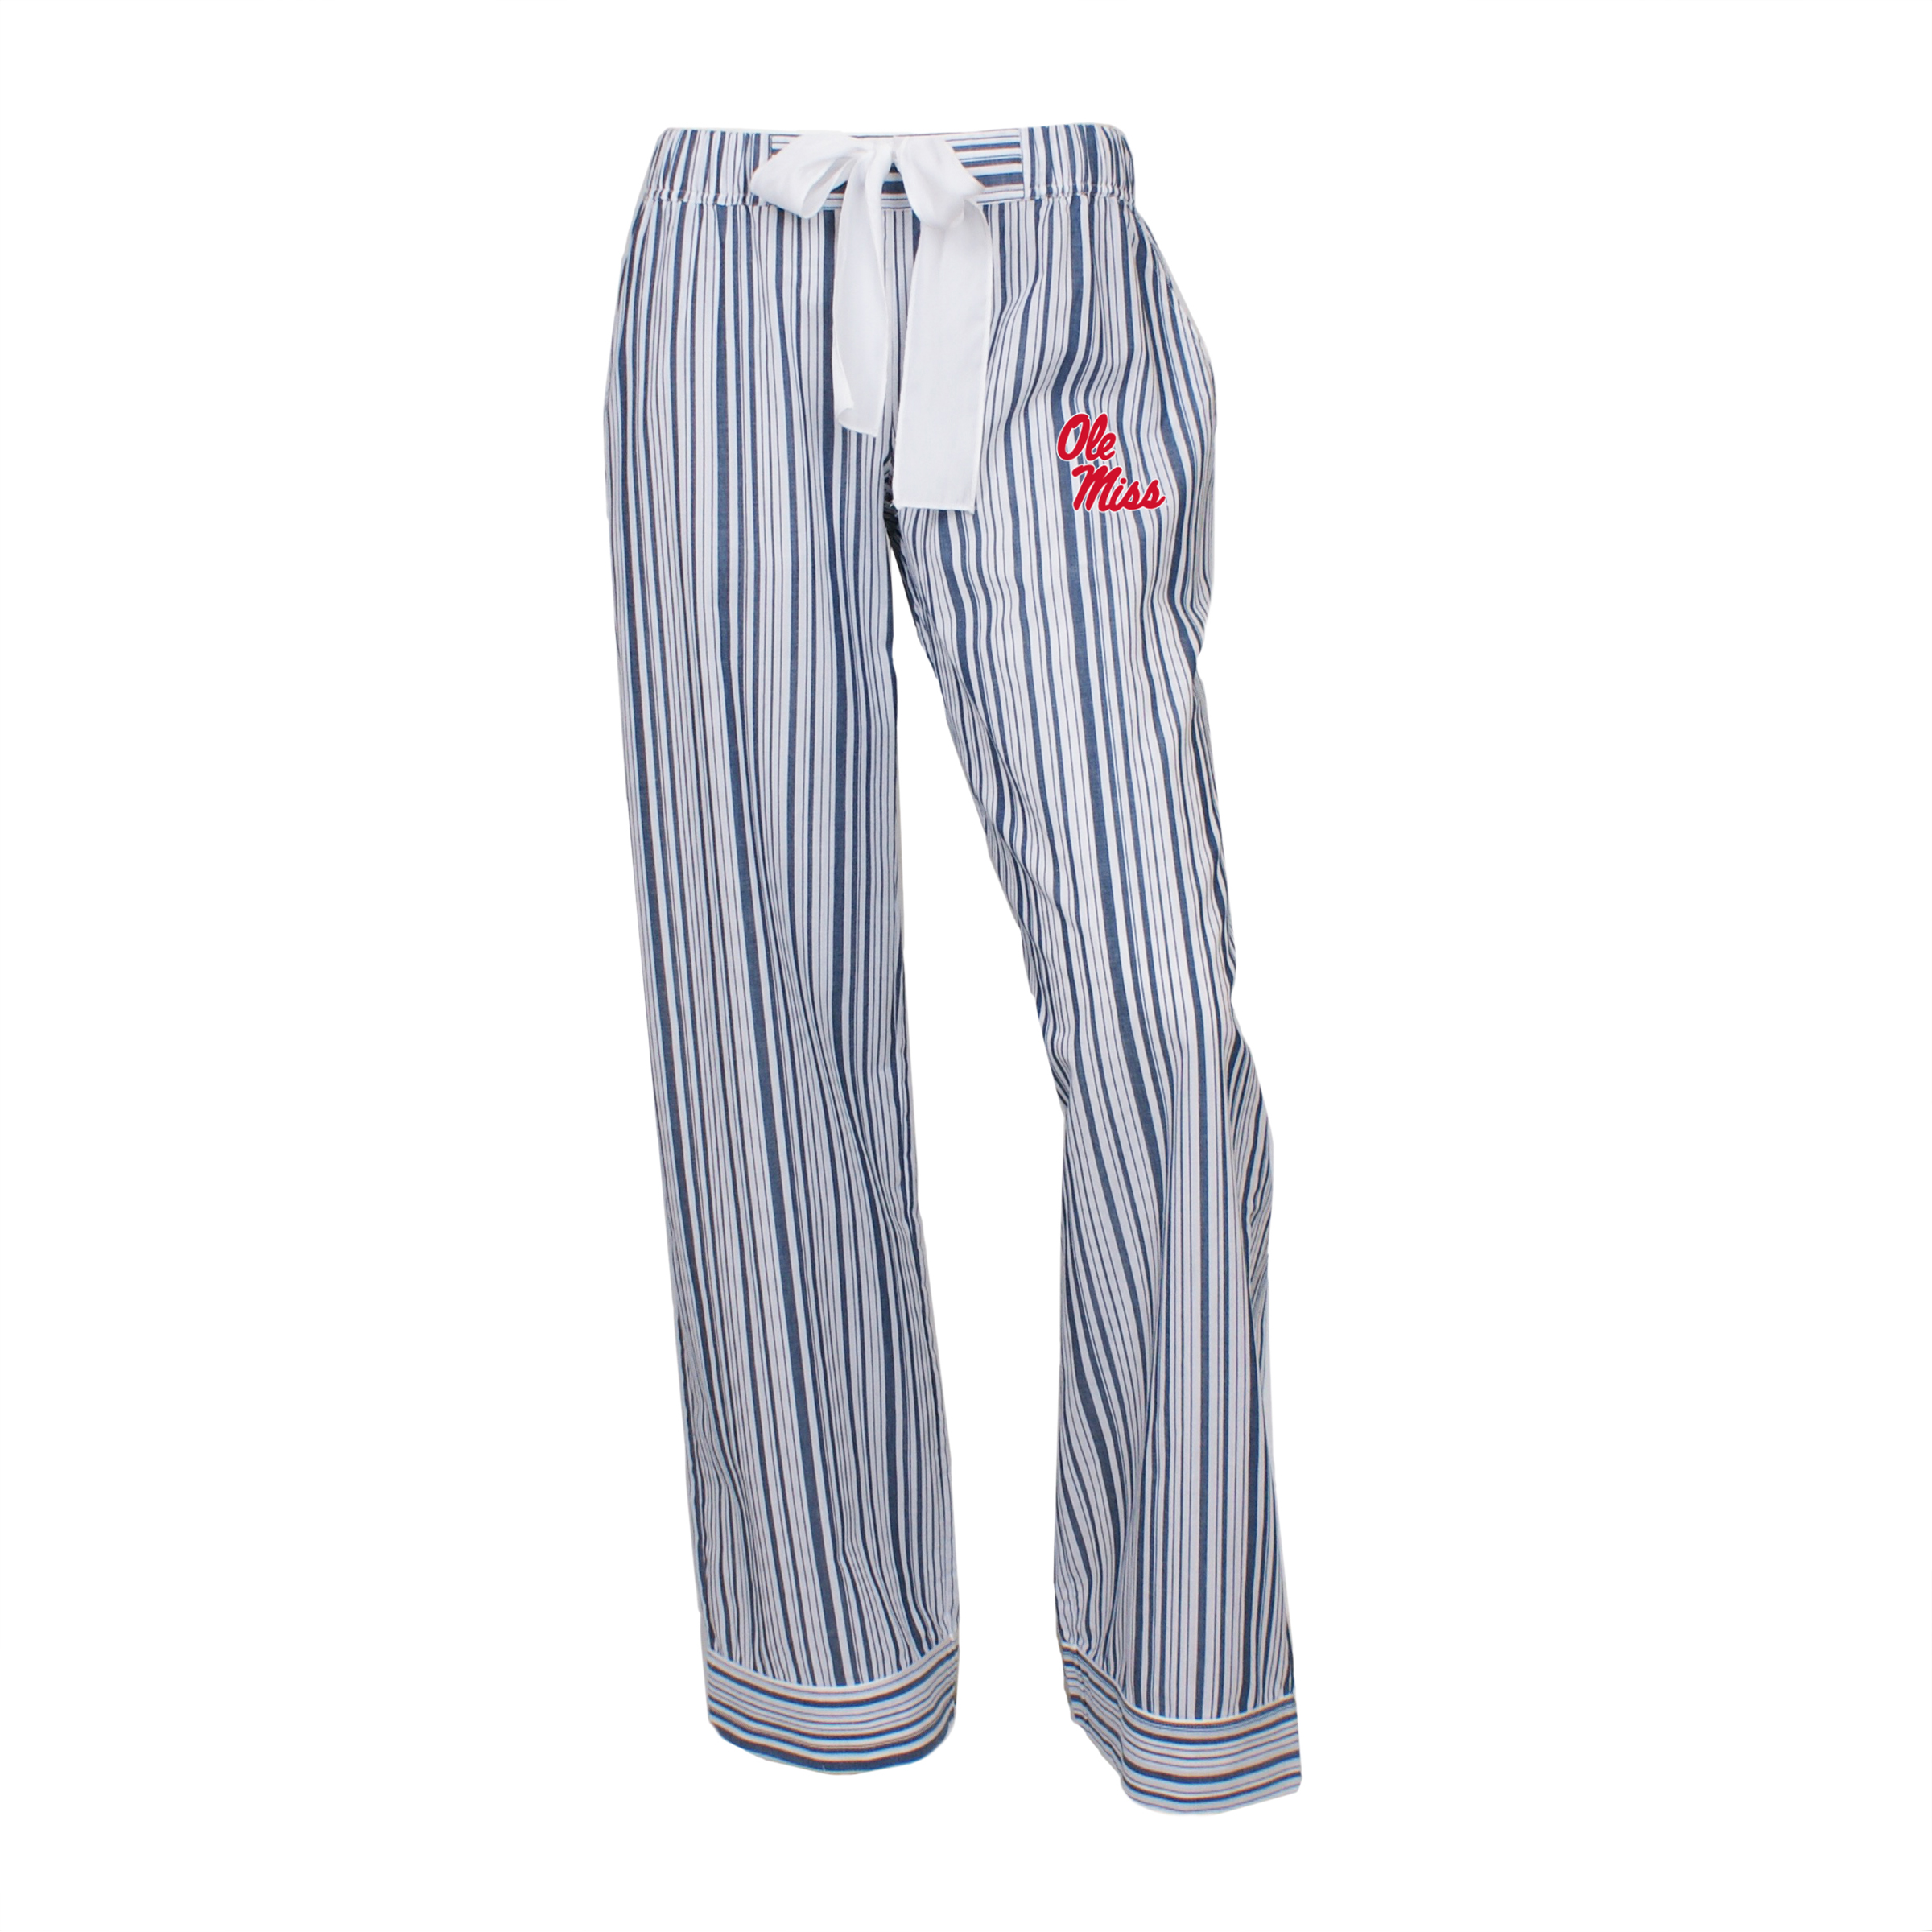 Woven Striped Women's Pants